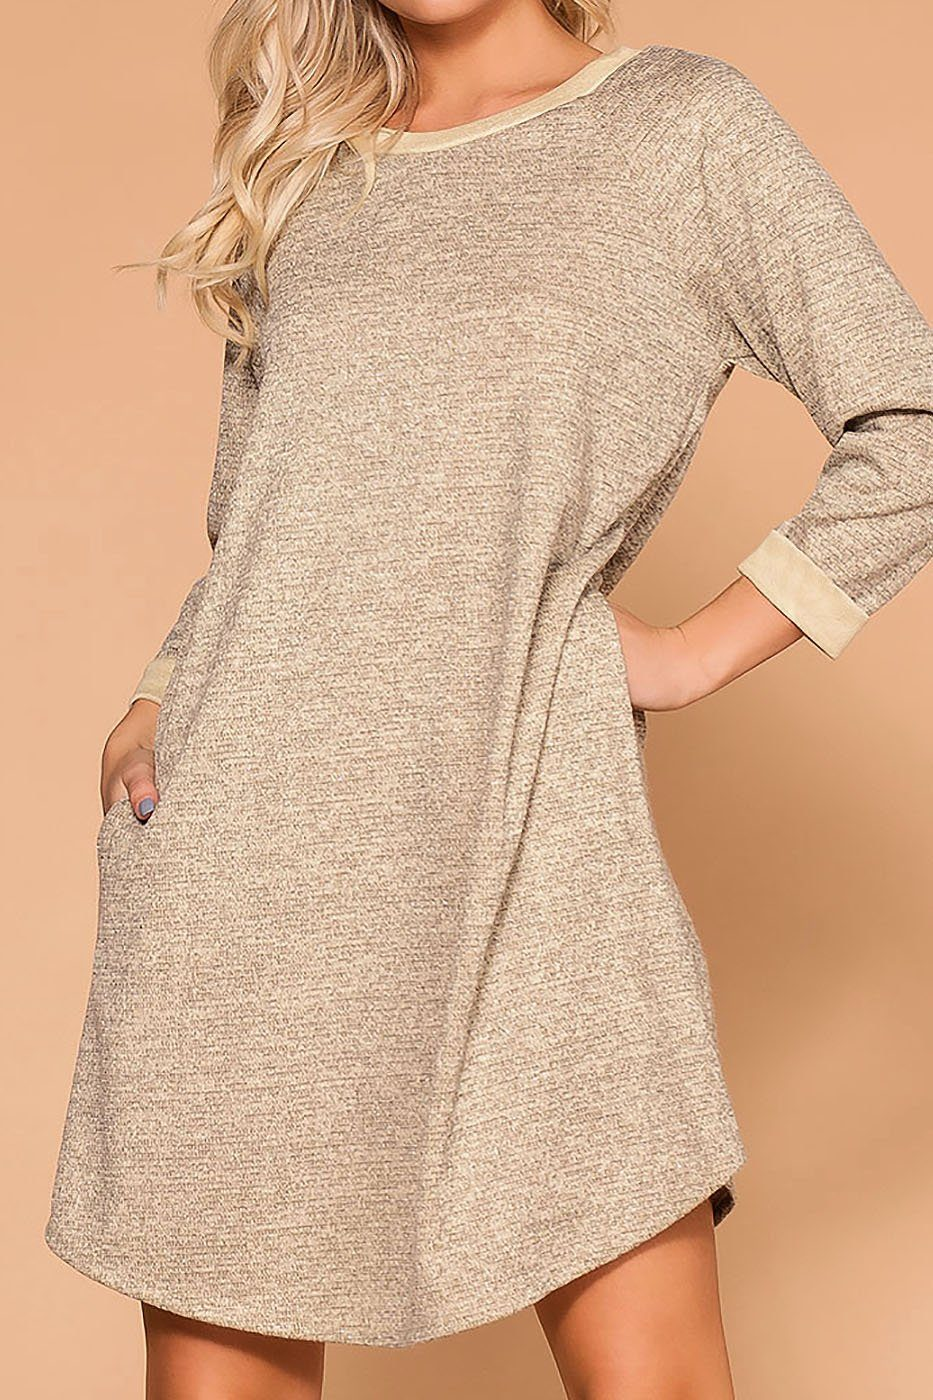 Simple Pleasures Pocket Shift Dress | Veveret